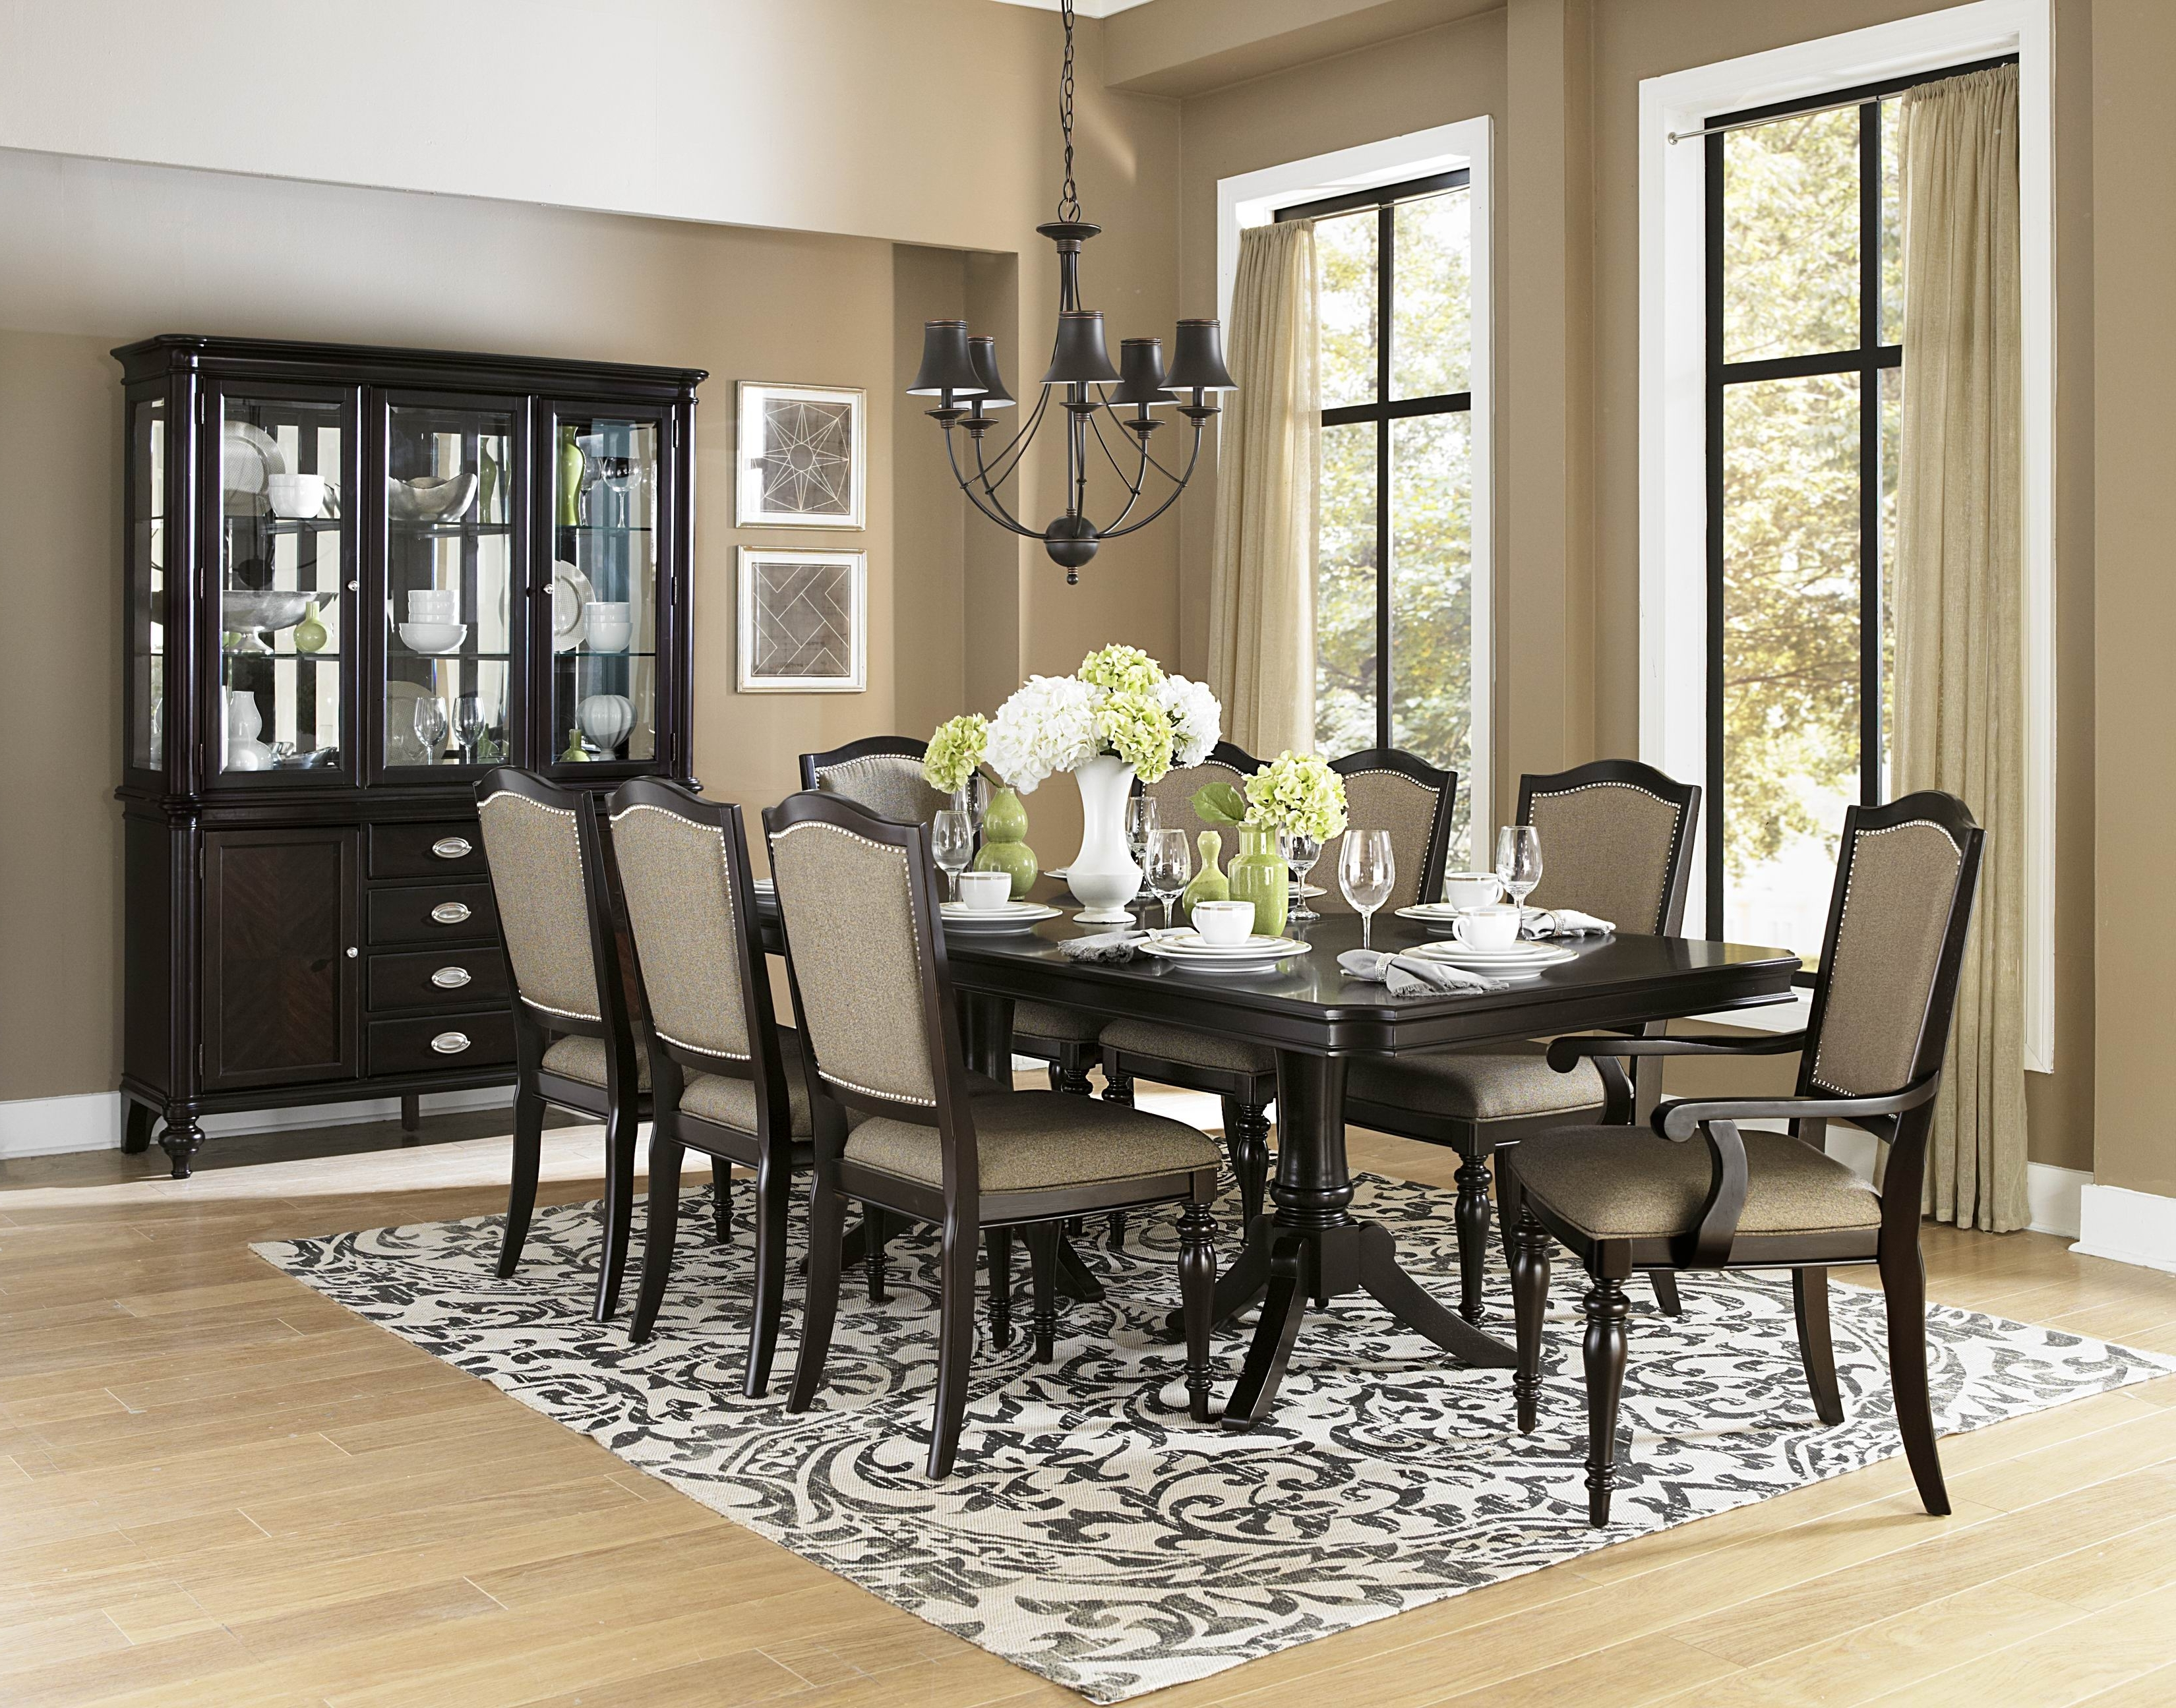 Dining Room Dark Wood Table Big Dining Room Table Black Dining Table within Widely used Dark Wood Dining Tables And Chairs